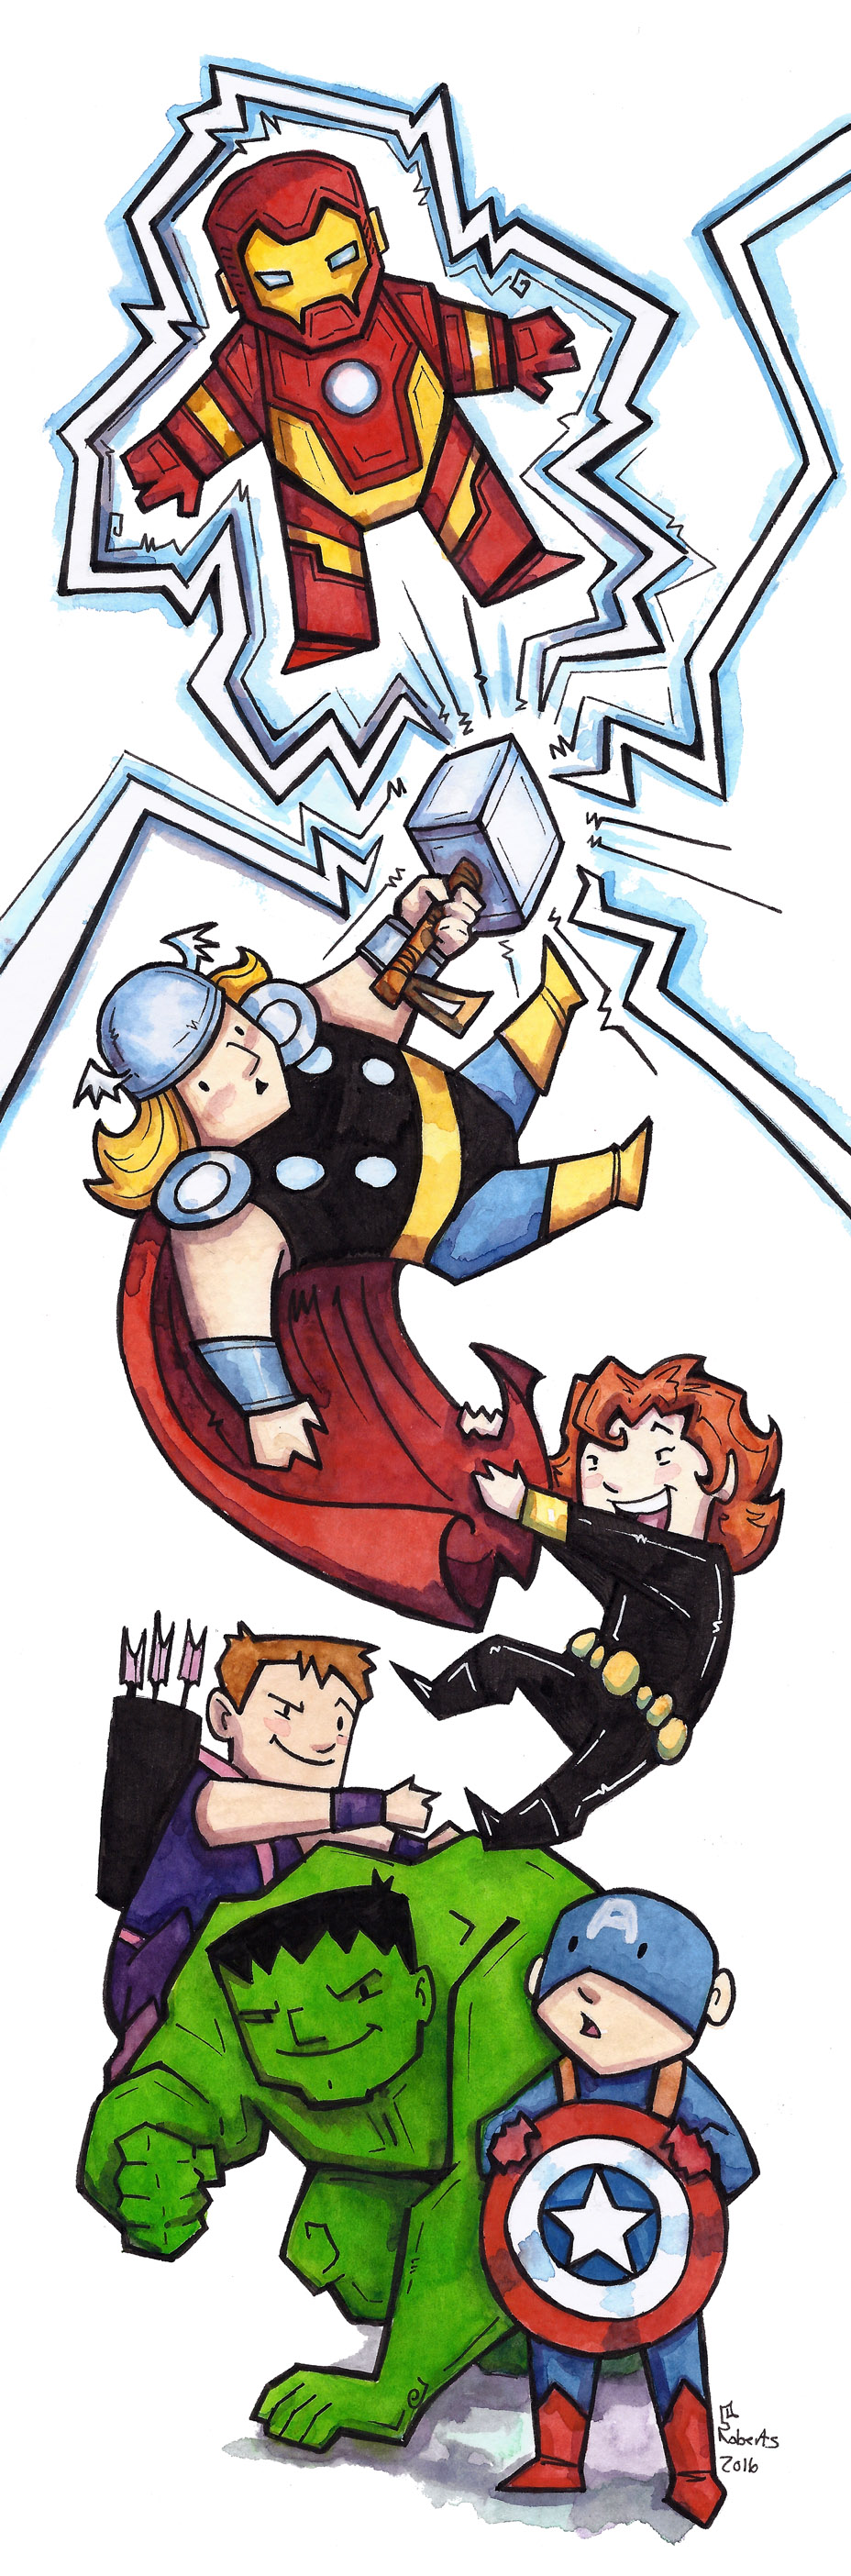 "Avengers - (fanart watercolor) 6""x 17.5"" - $75 + shipping  This is a cropped Image of the original)"